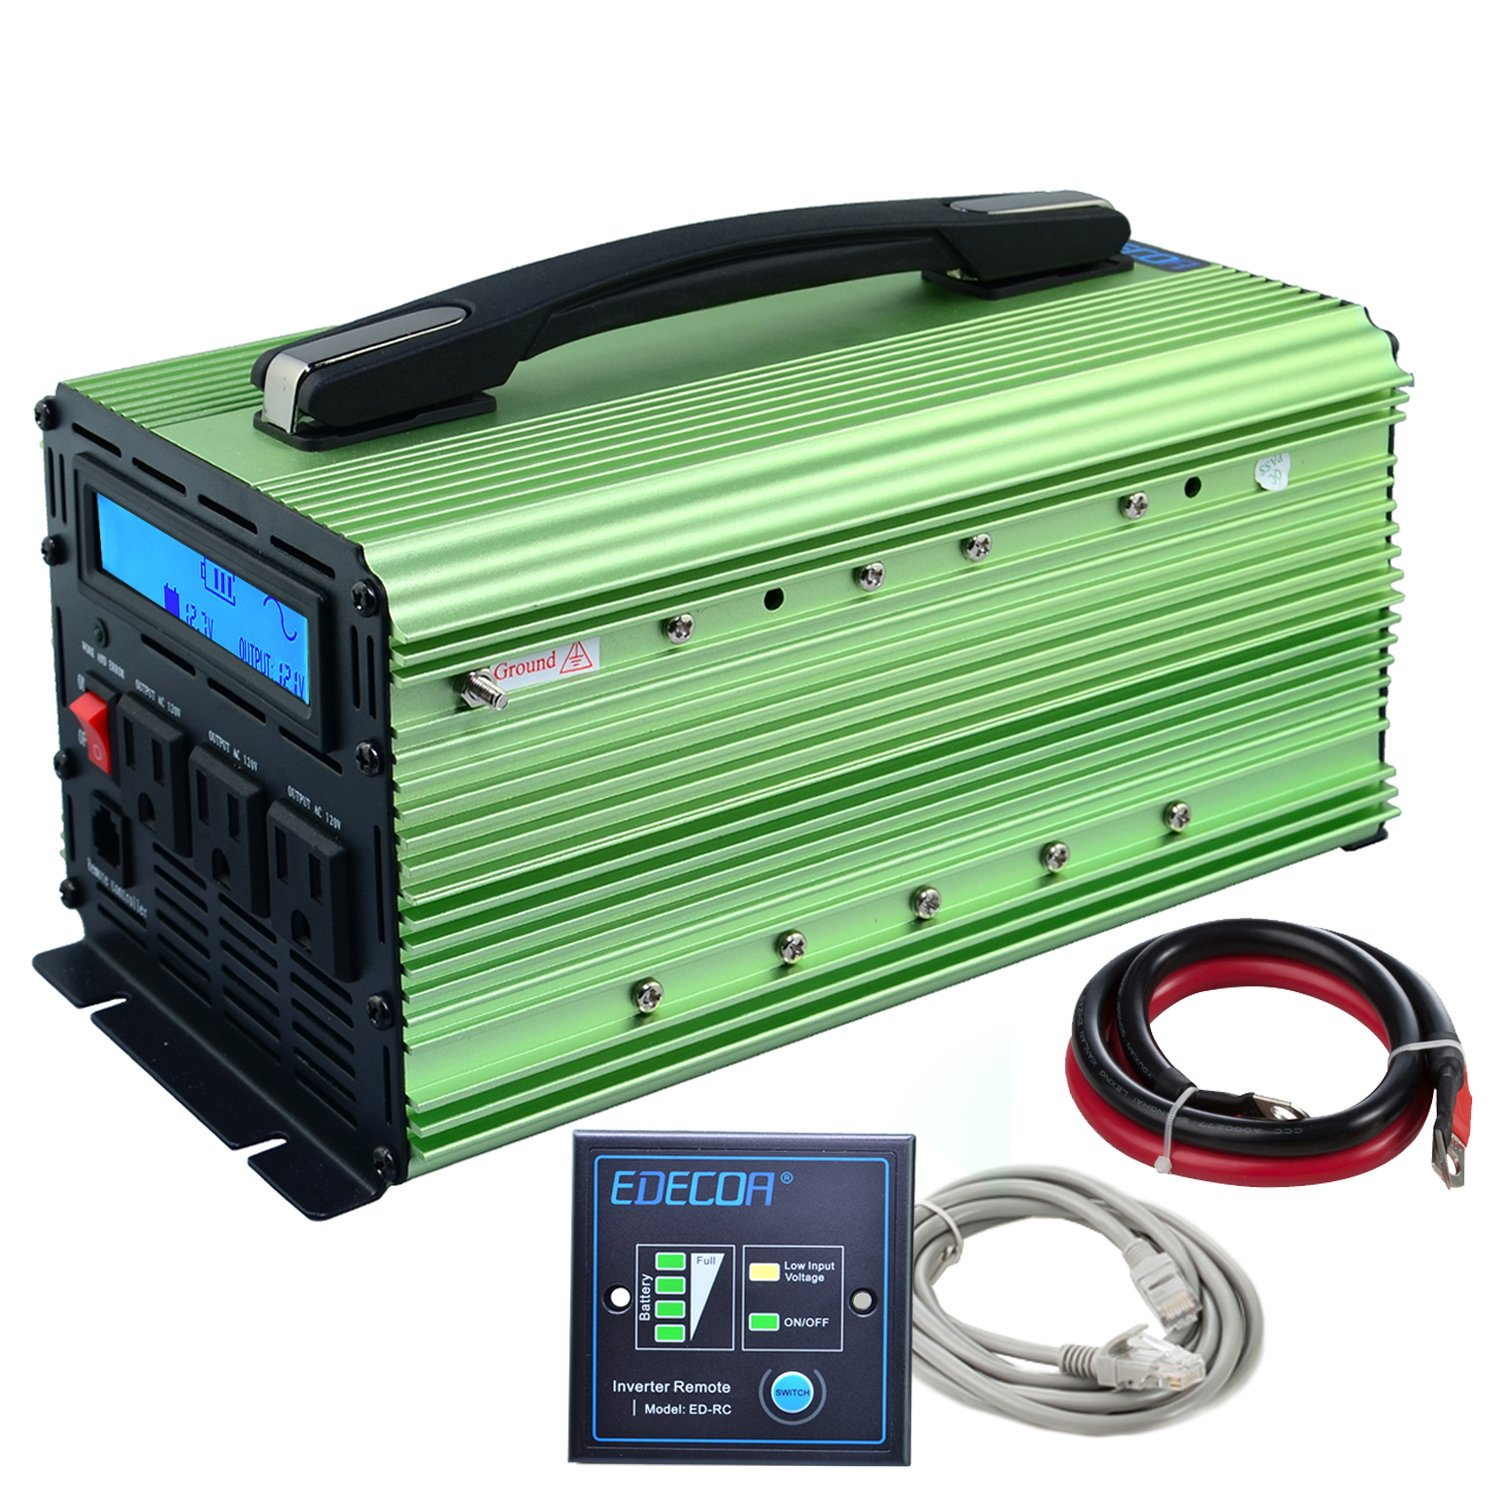 EDECOA 1500W Power Inverter Pure Sine Wave DC 12V to 120V AC with LCD Display and Remote